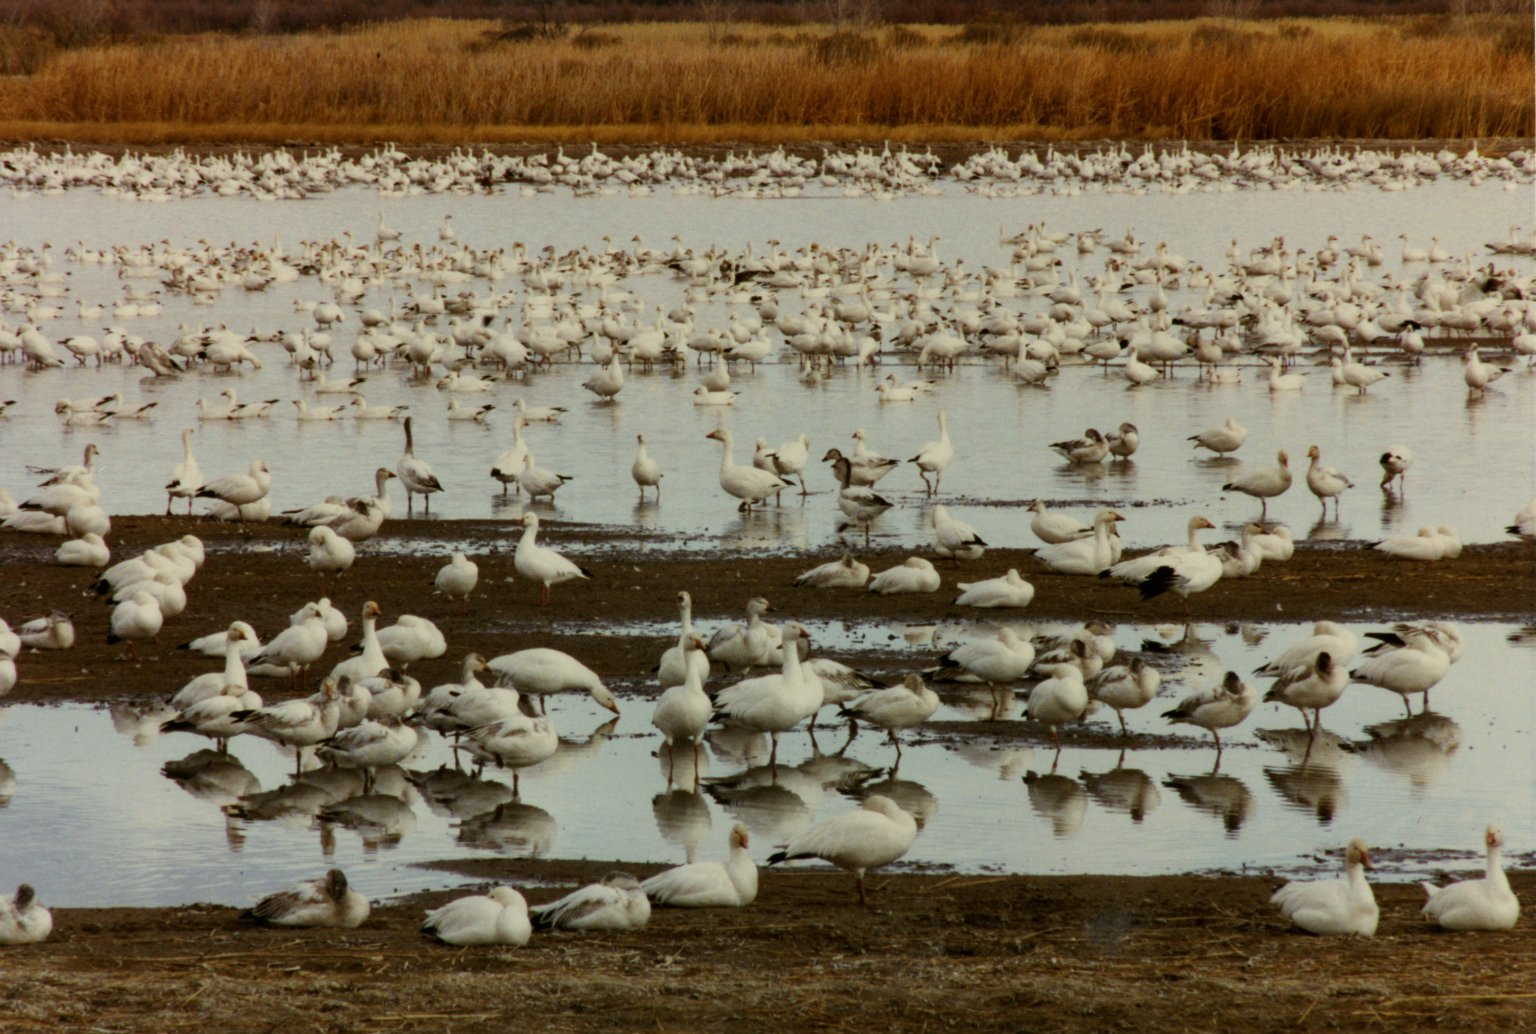 Image of snow geese